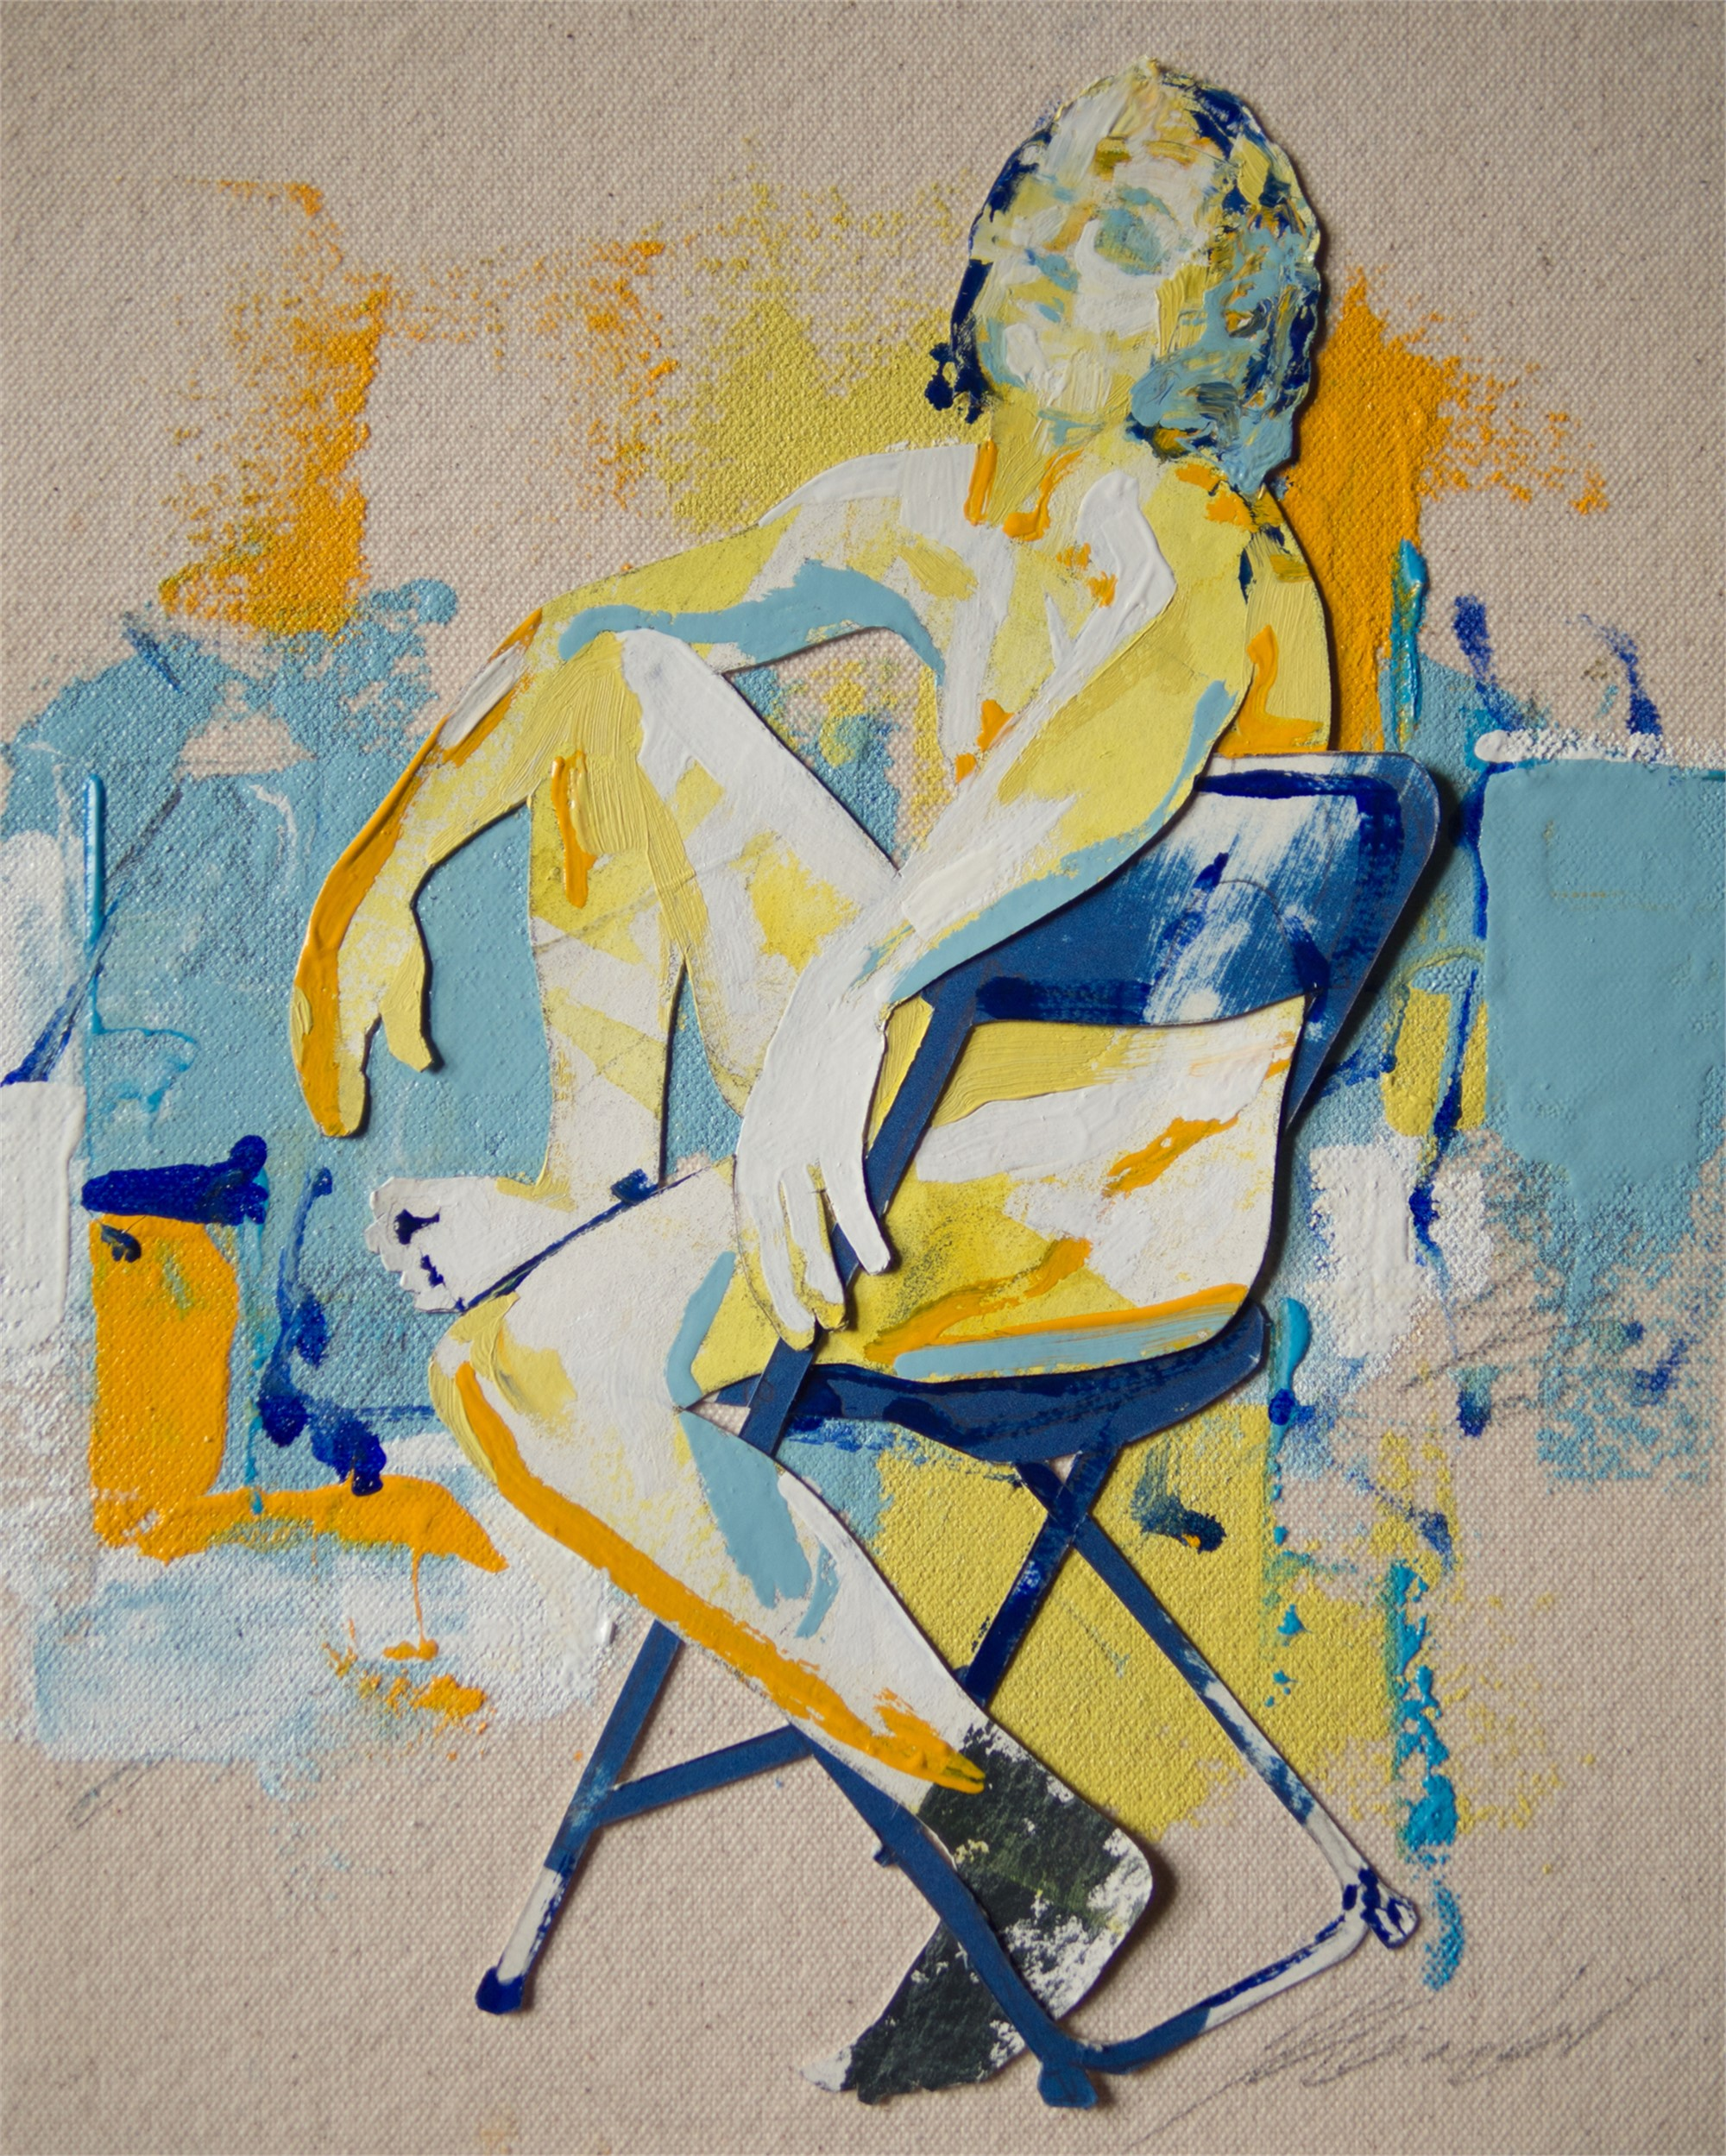 Geo and the Blue Chair by Jason Lee Gimbel